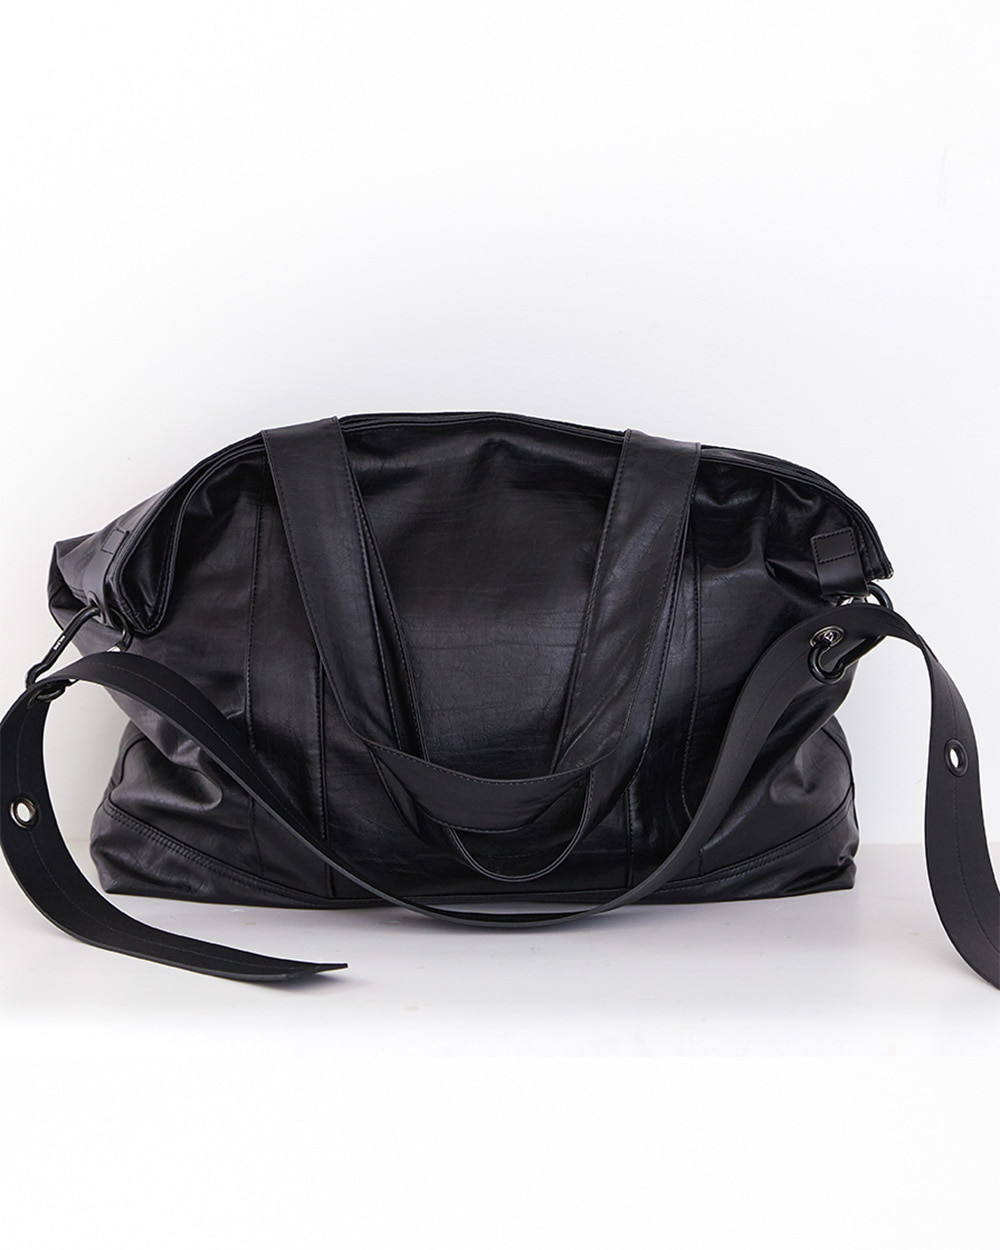 HALEINE알렌느 BLACK eco leather strap oversize tod&cross bag(NA003)